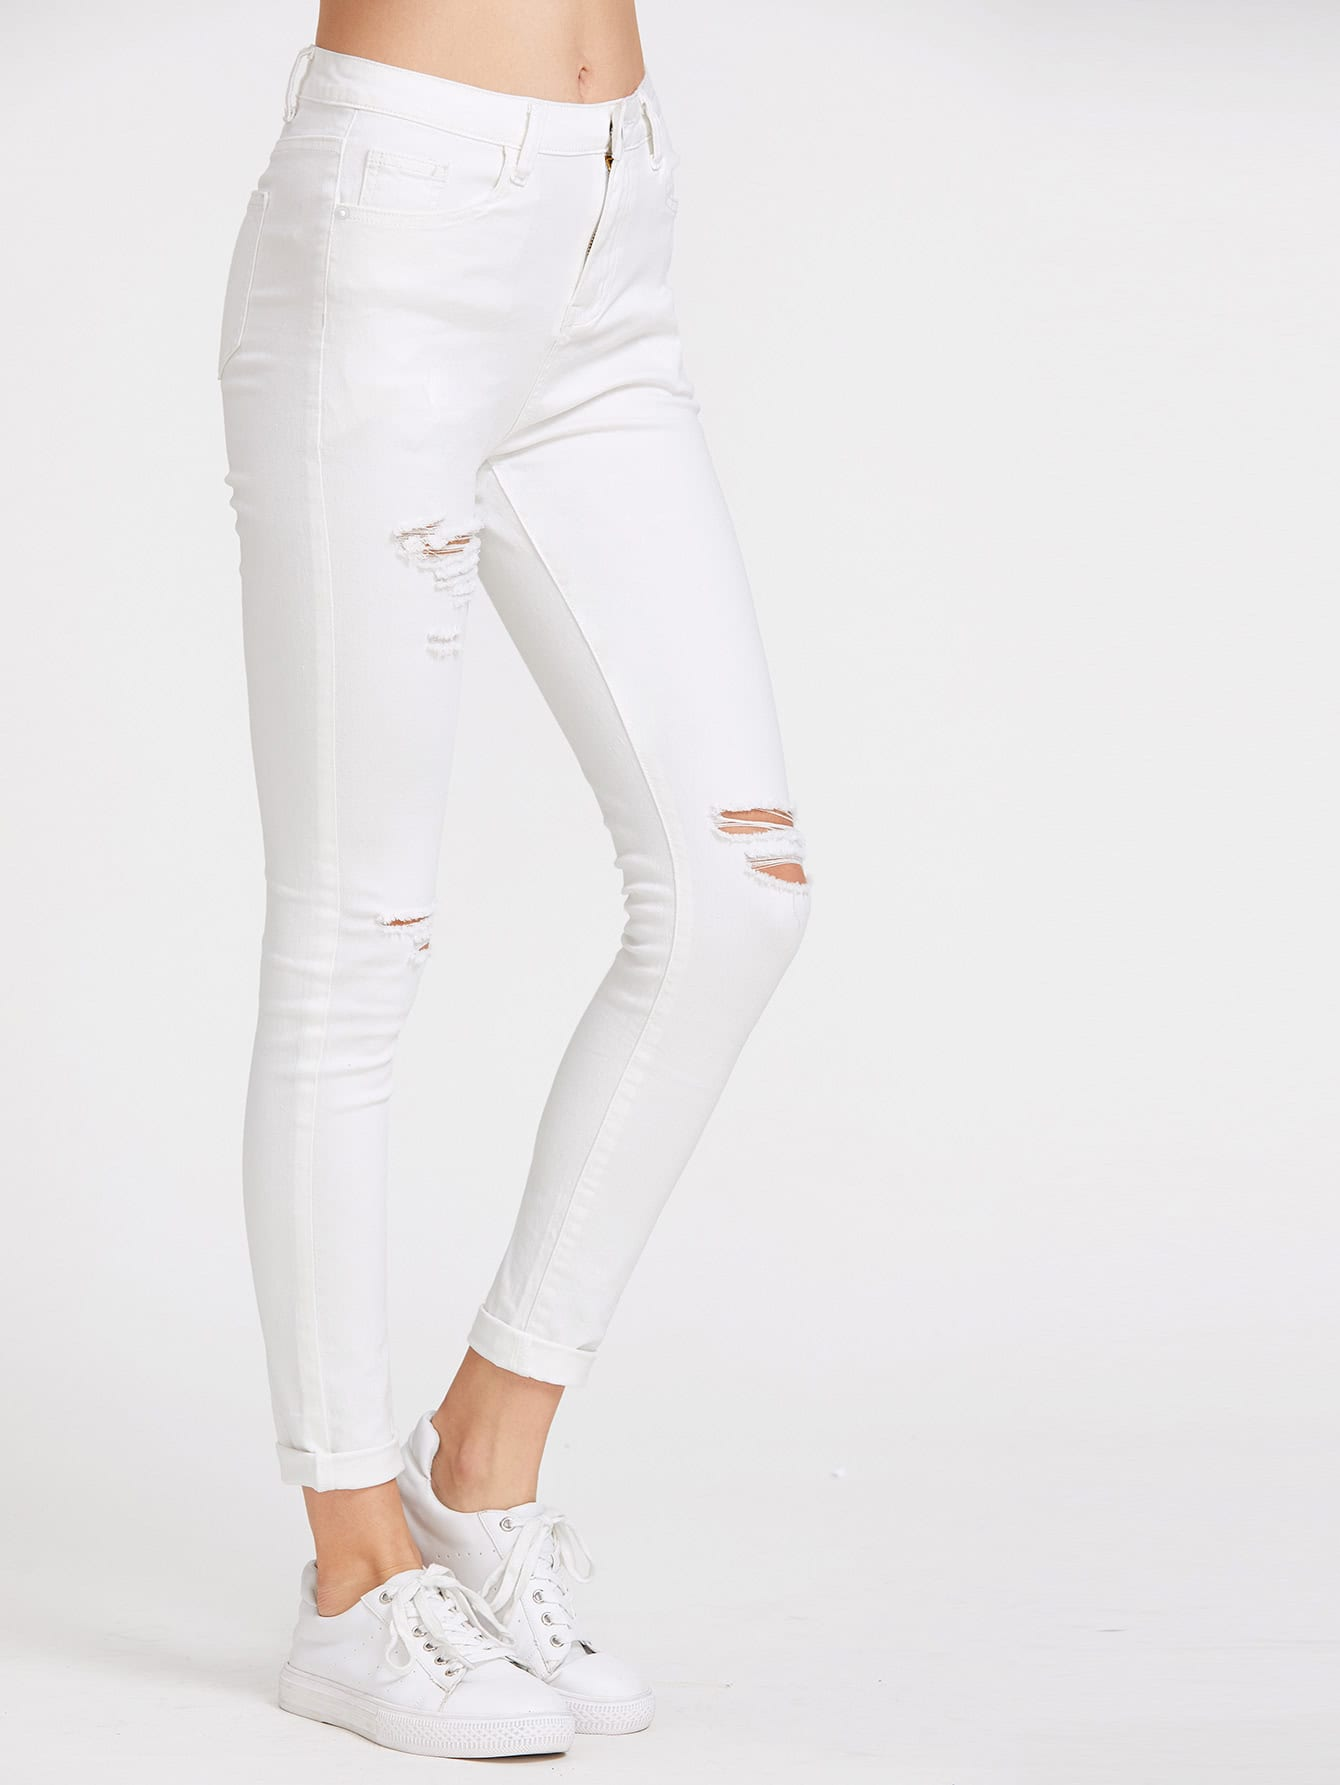 Image of 5 Pocket Ripped Skinny Jeans